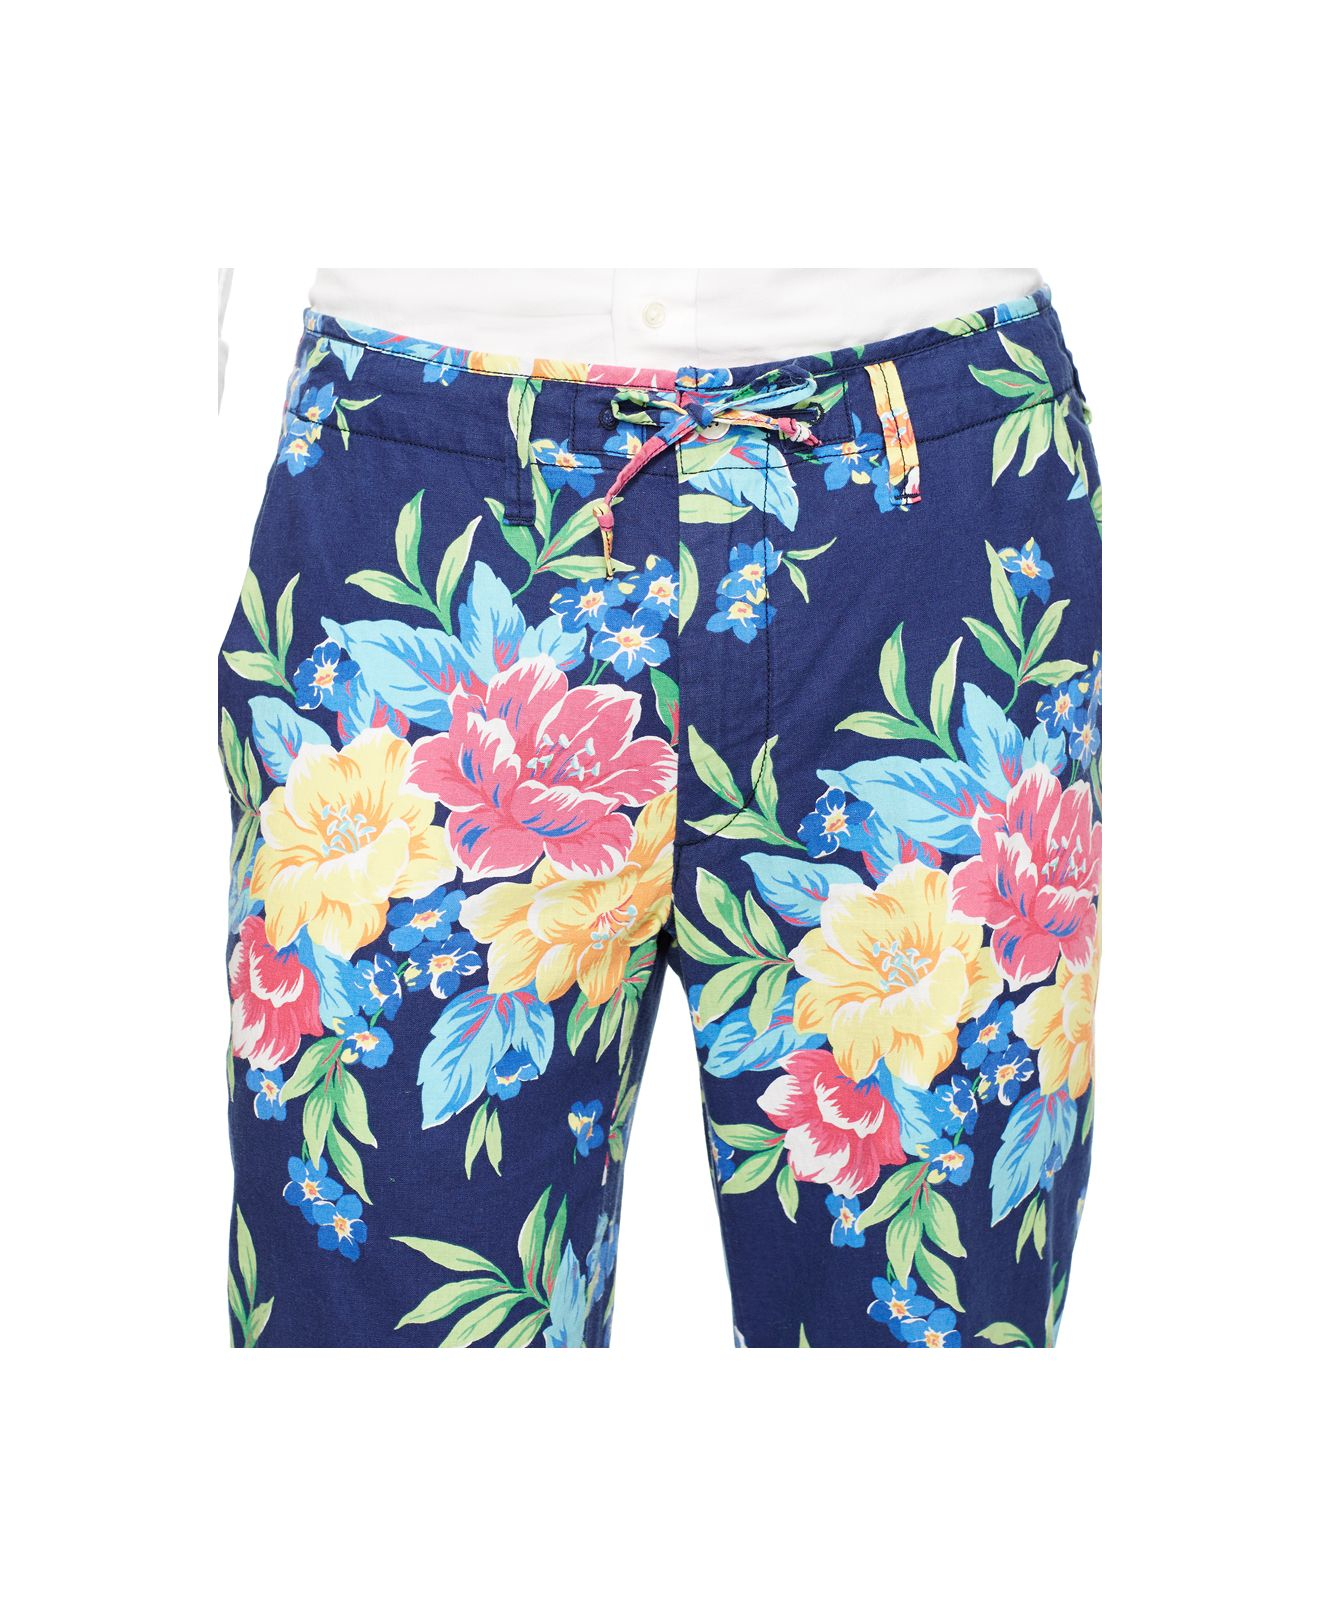 e0bf9c5a4892 Lyst - Polo Ralph Lauren Straight-fit Floral-print Pants for Men